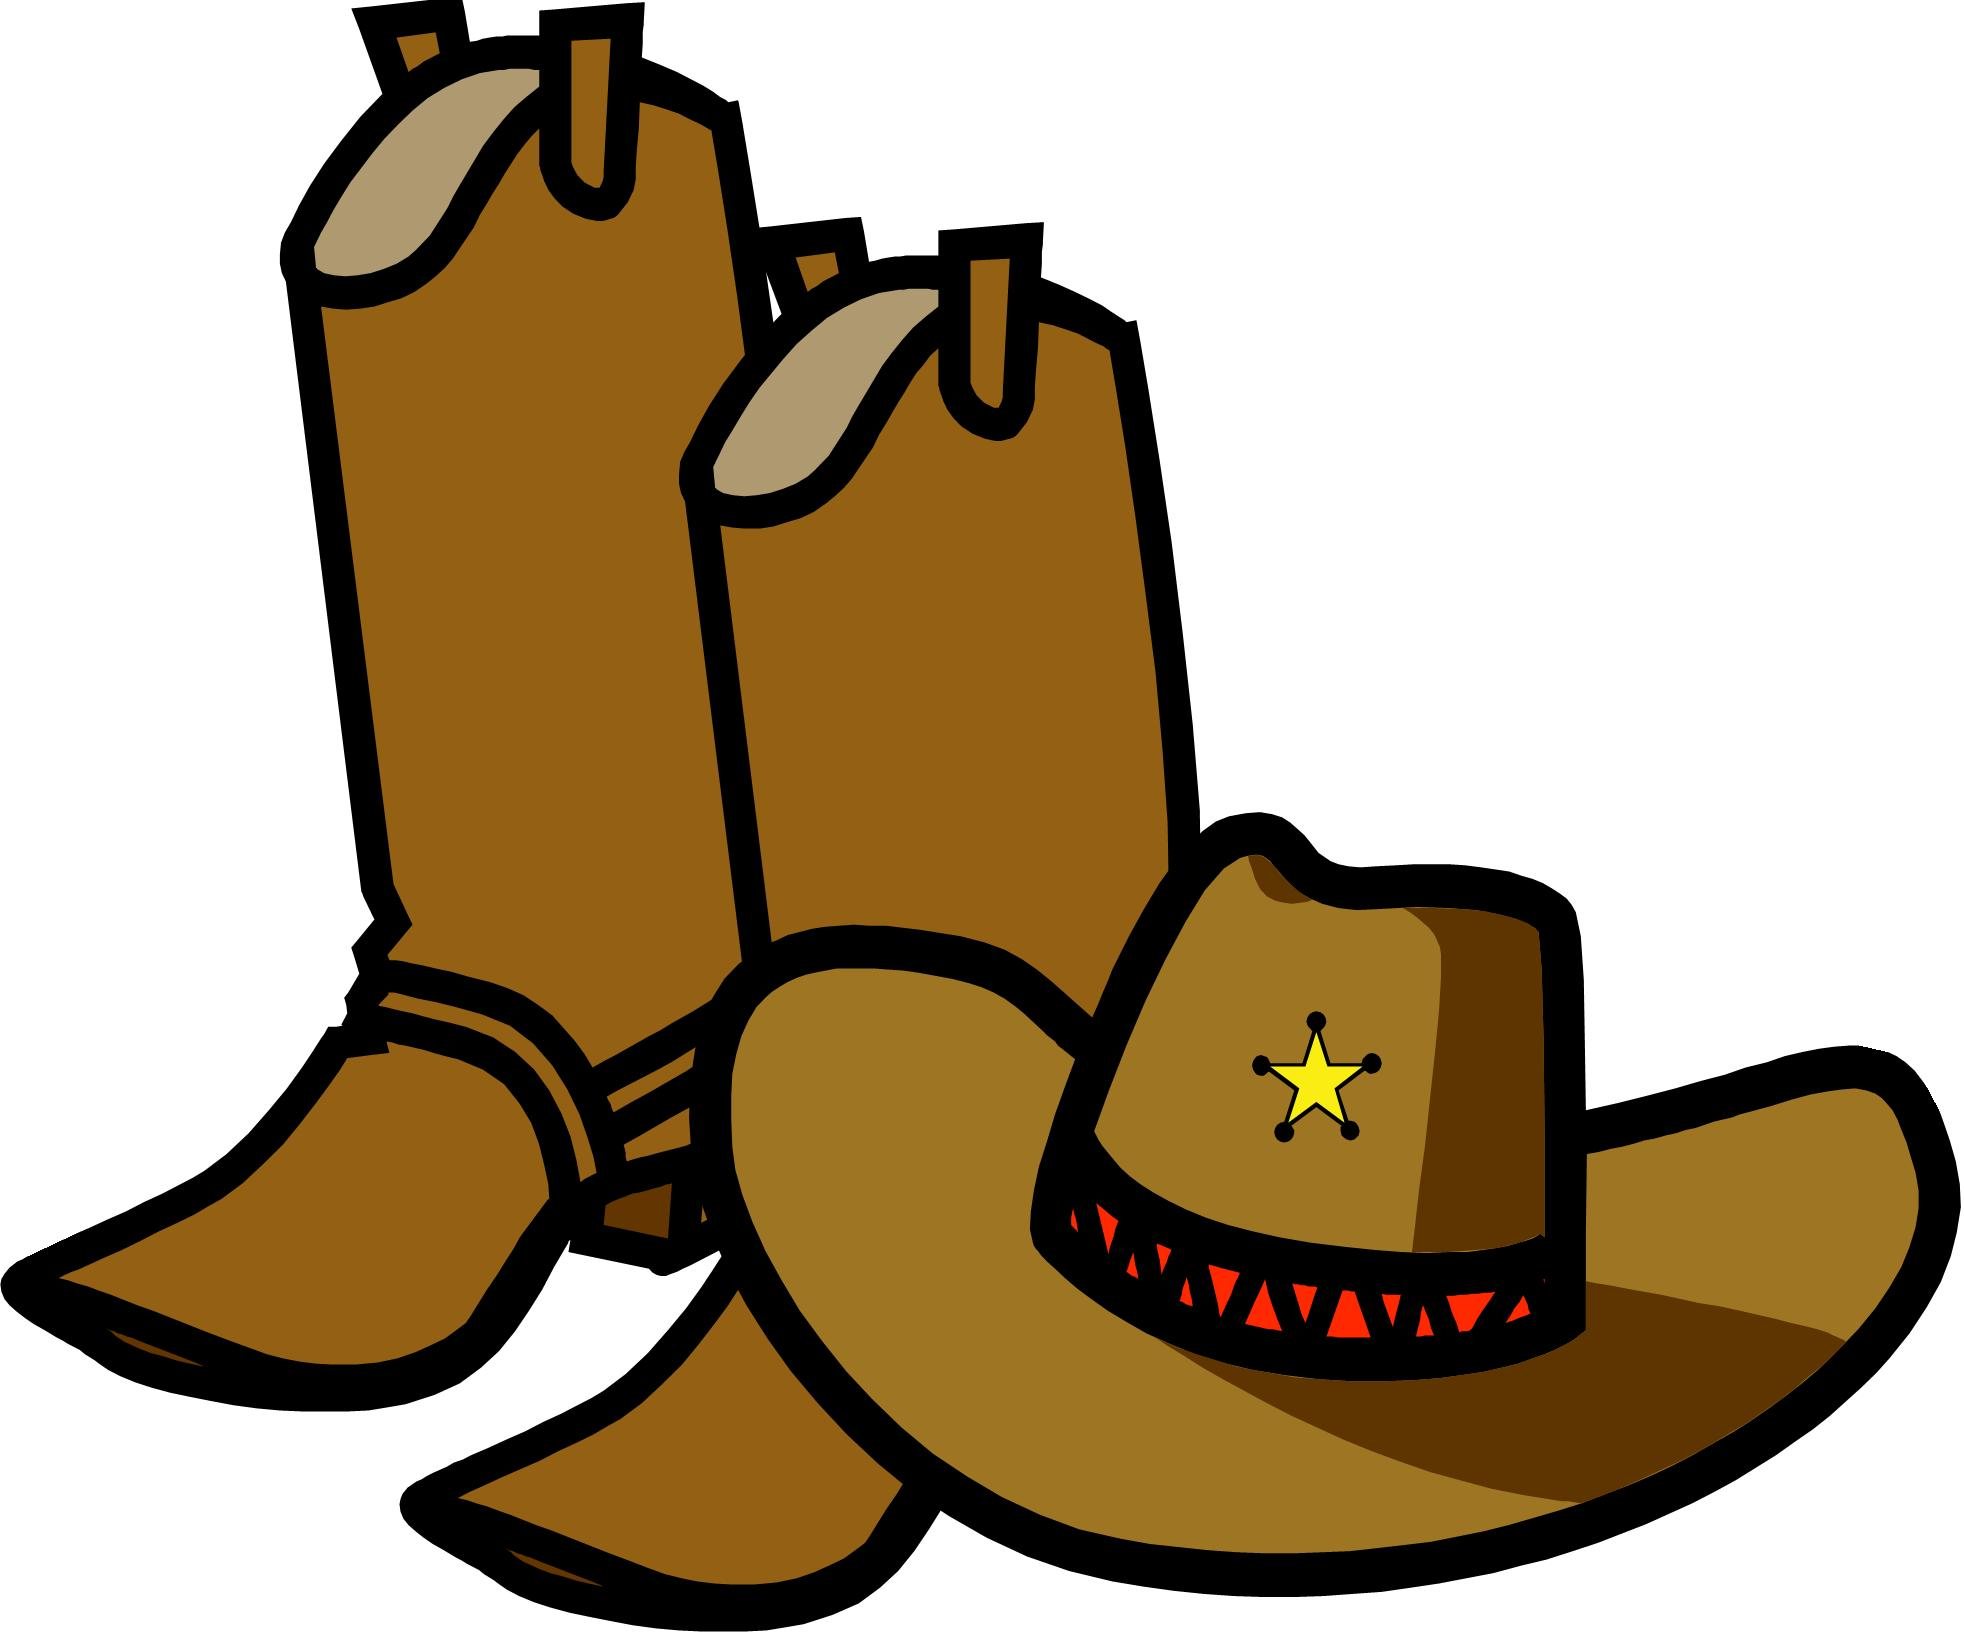 June cowboy . Western clipart picnic image freeuse download